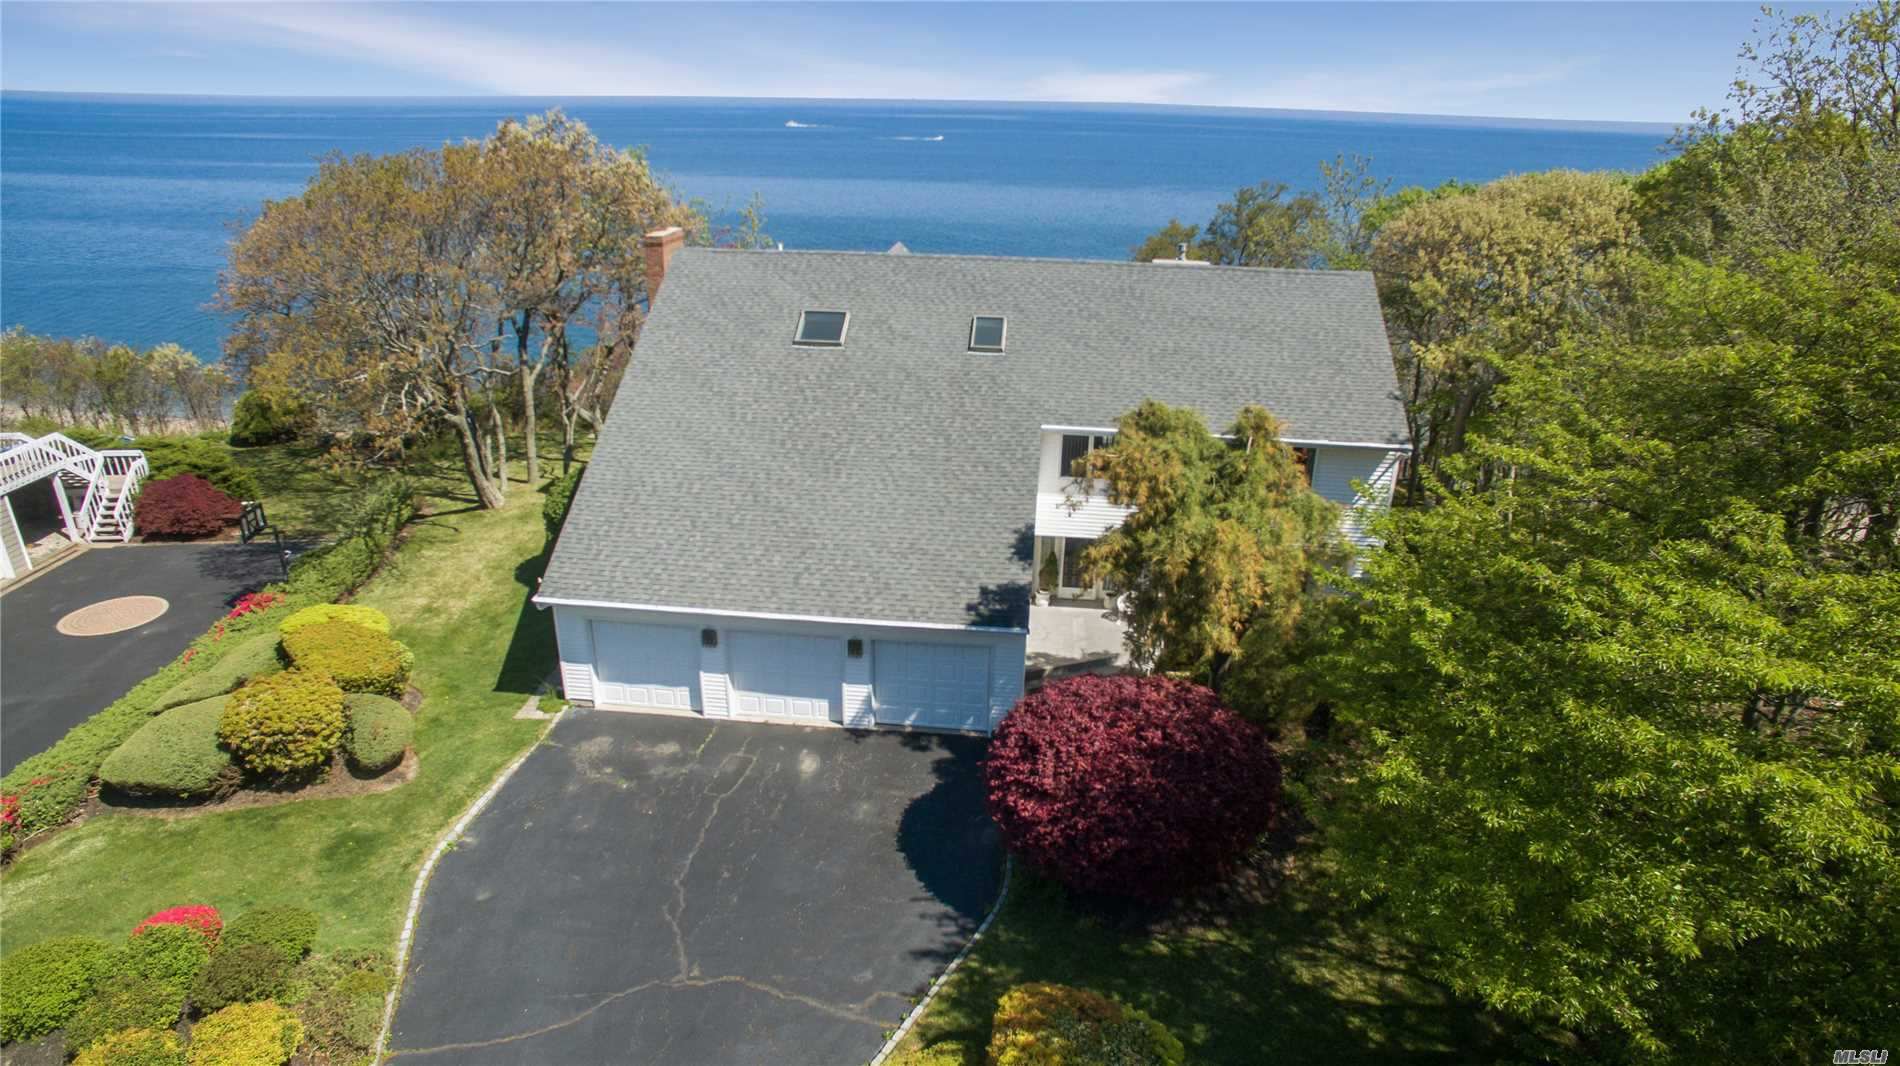 The Sound & Surf Are A Backdrop To This Extraordinary Waterfront Custom Built Home! Soaring Ceilings/Windows Galore/2 Brick Fireplaces/Cvac/Cac/Oak Floors/Observation Deck From Mbdrm/3 Car. Located In A Prime Waterfront Community W/Access To Pvt. Beach. New Secure Bulk Heading Maintained By Beach Association. Buy The Sound!! Note: Study Can Be 4th Bedroom On 1st Level.